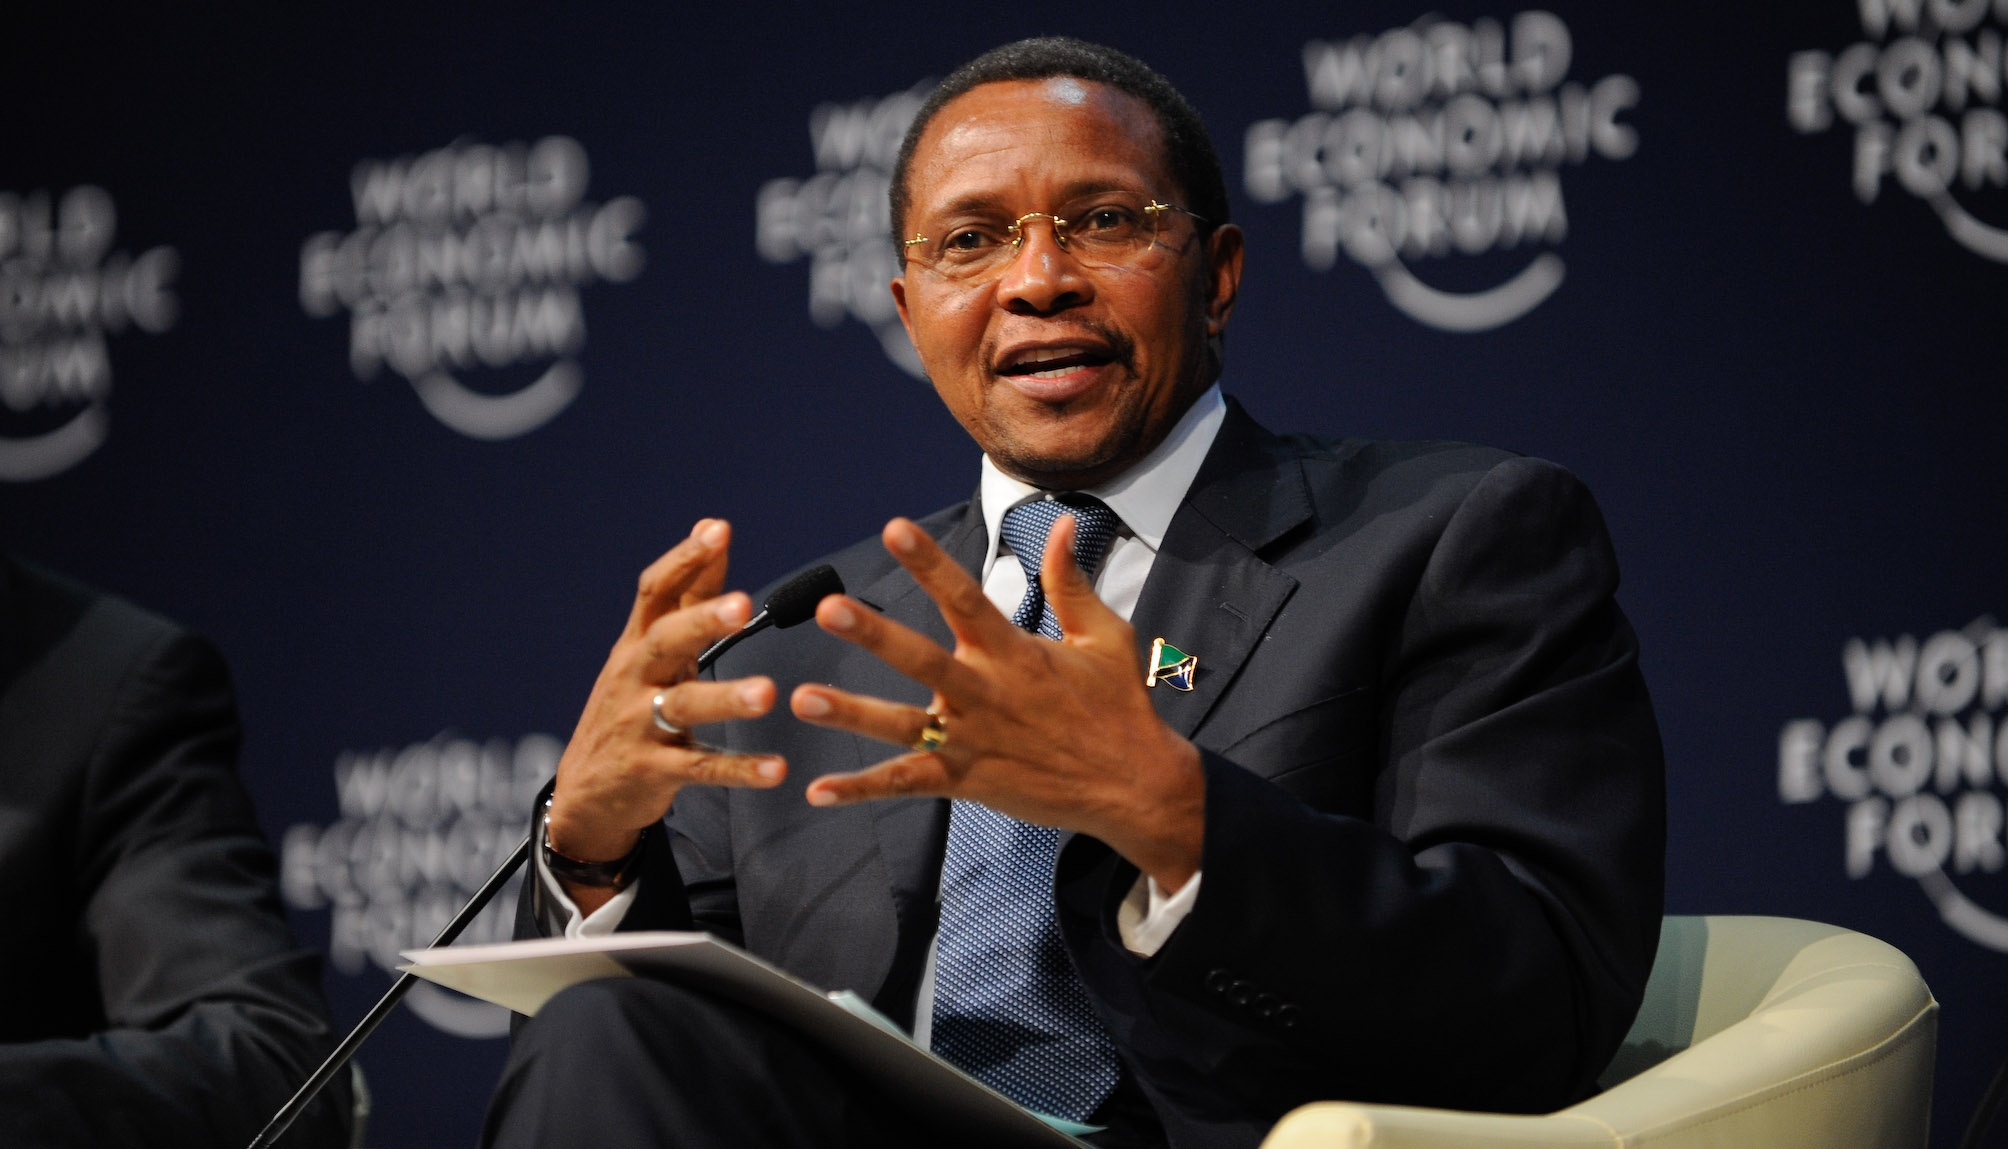 Jakaya_Kikwete_-_Partnerships_for_Development_-_World_Economic_Forum_on_Africa_2011_-_2